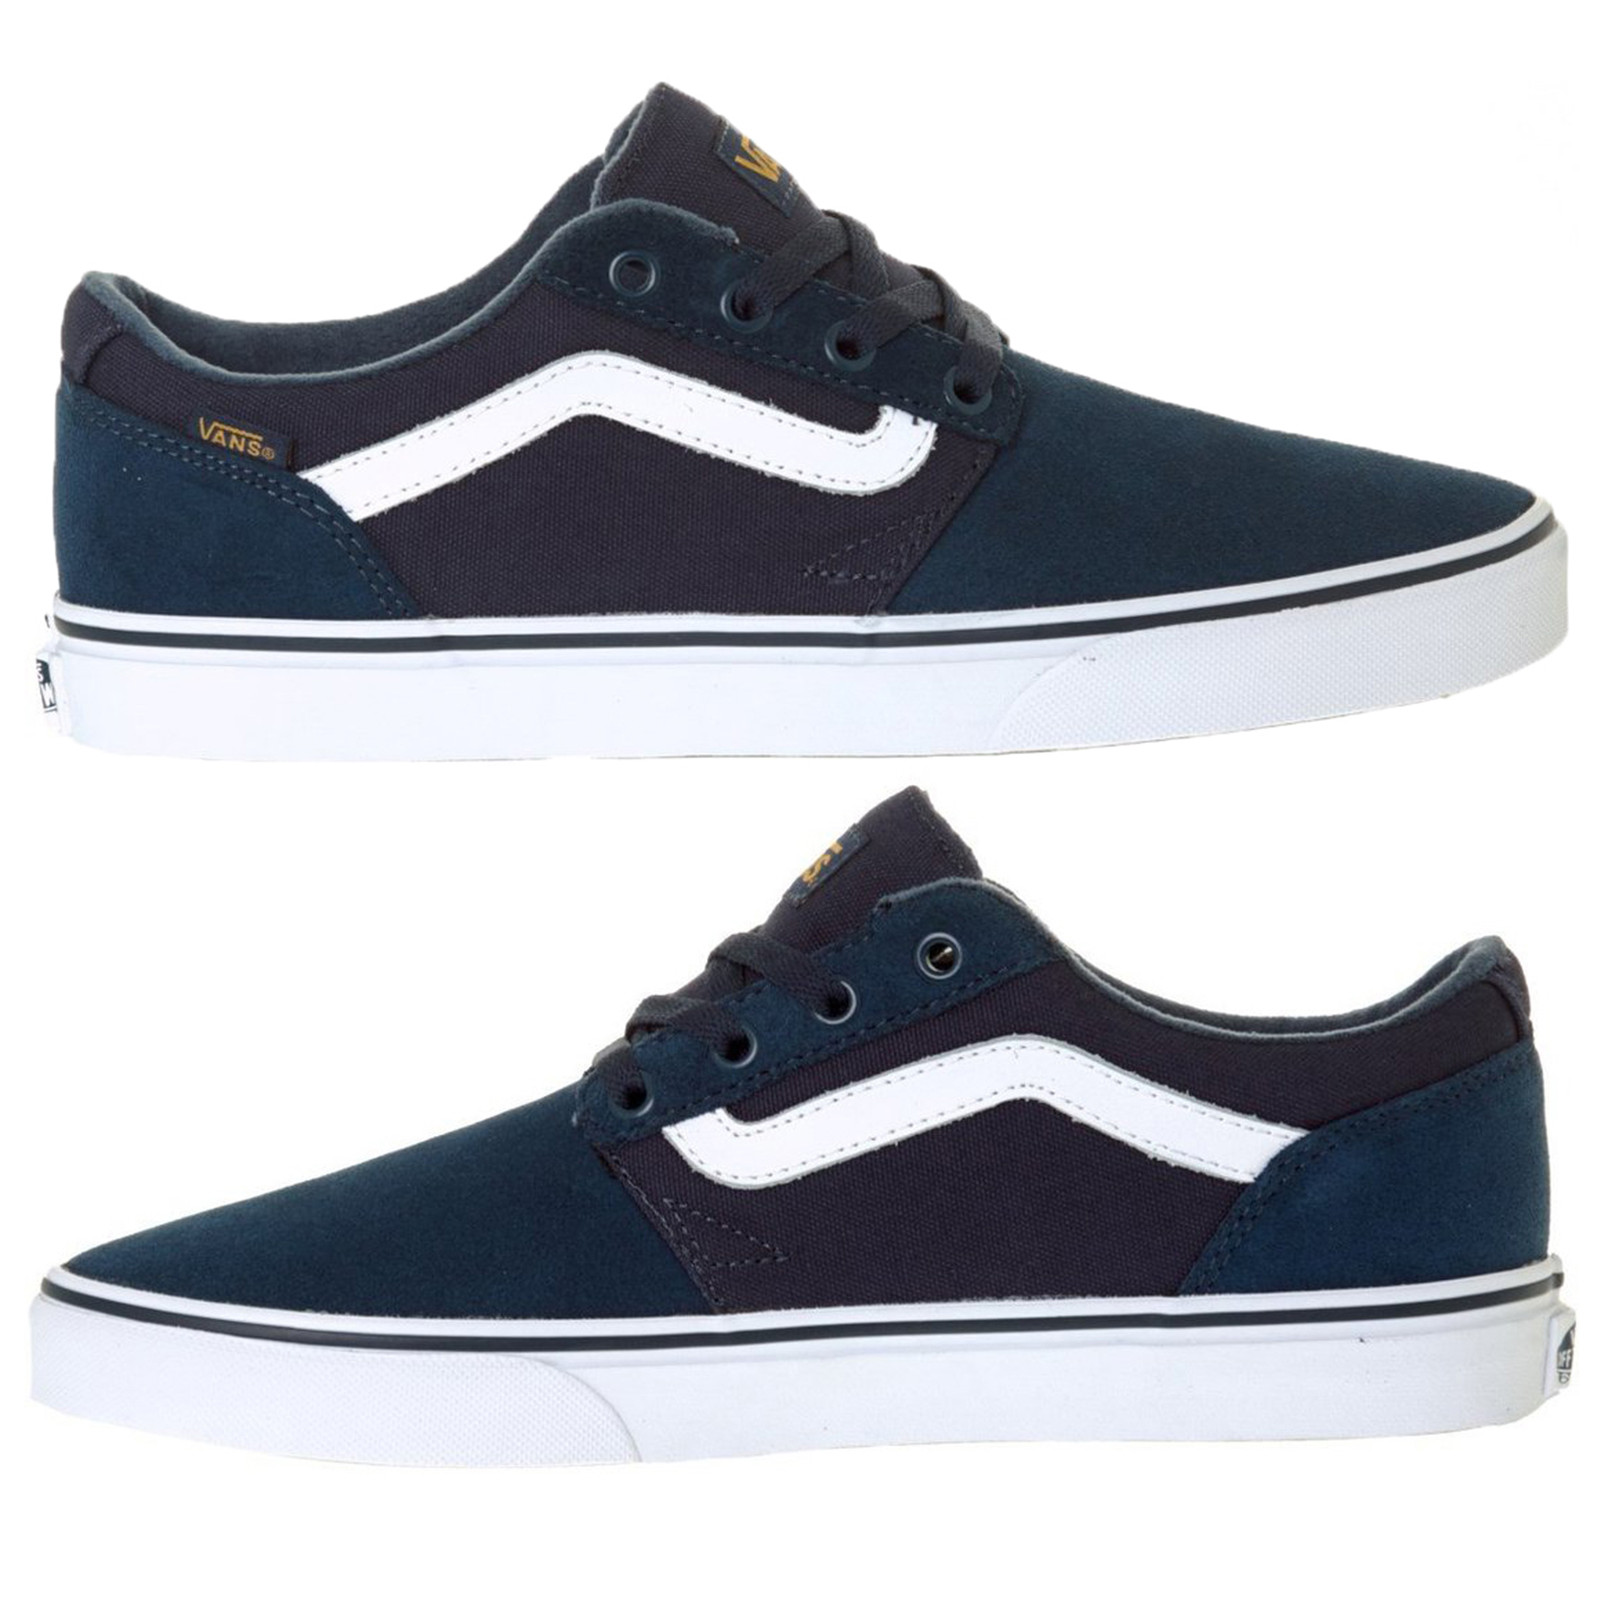 5a9a9f7ec1 Vans Men s Chapman Stripe Shoes Trainers Navy Gold